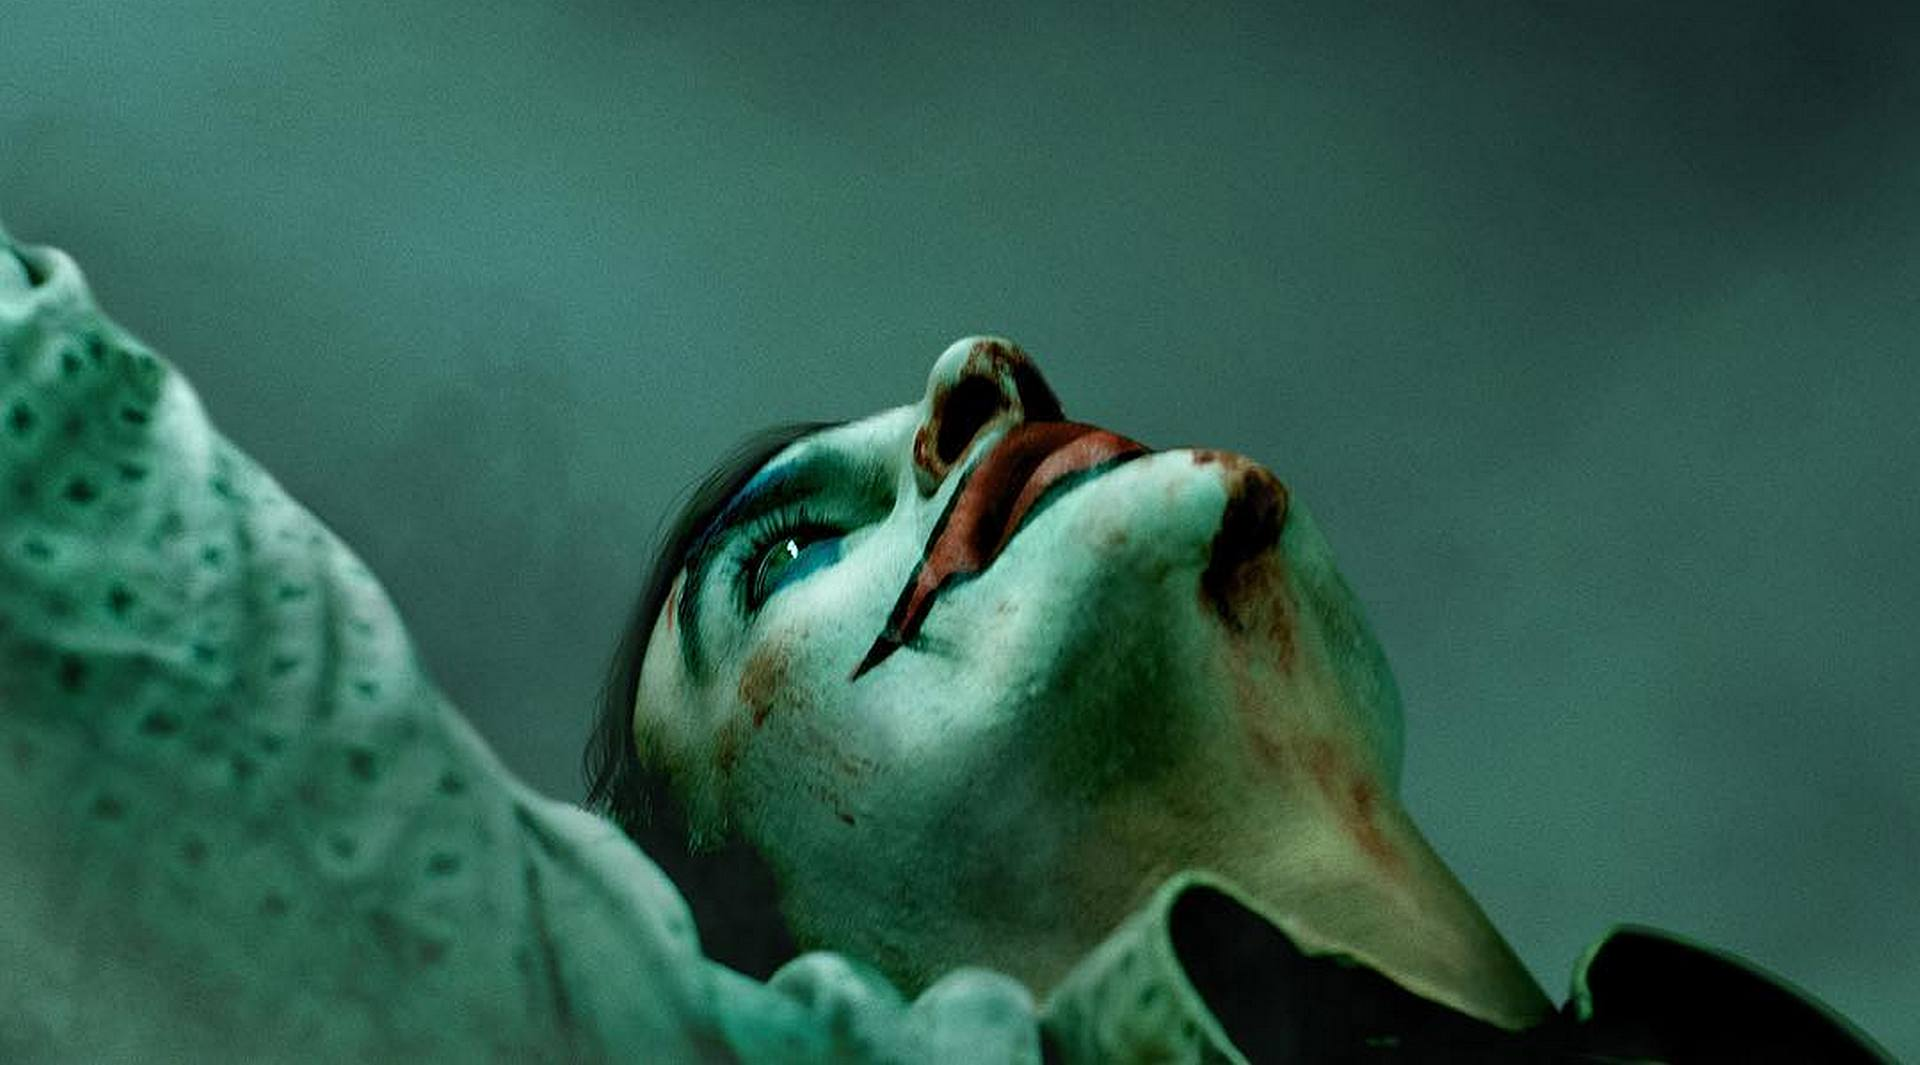 TIFF 2019: Joker Video Review